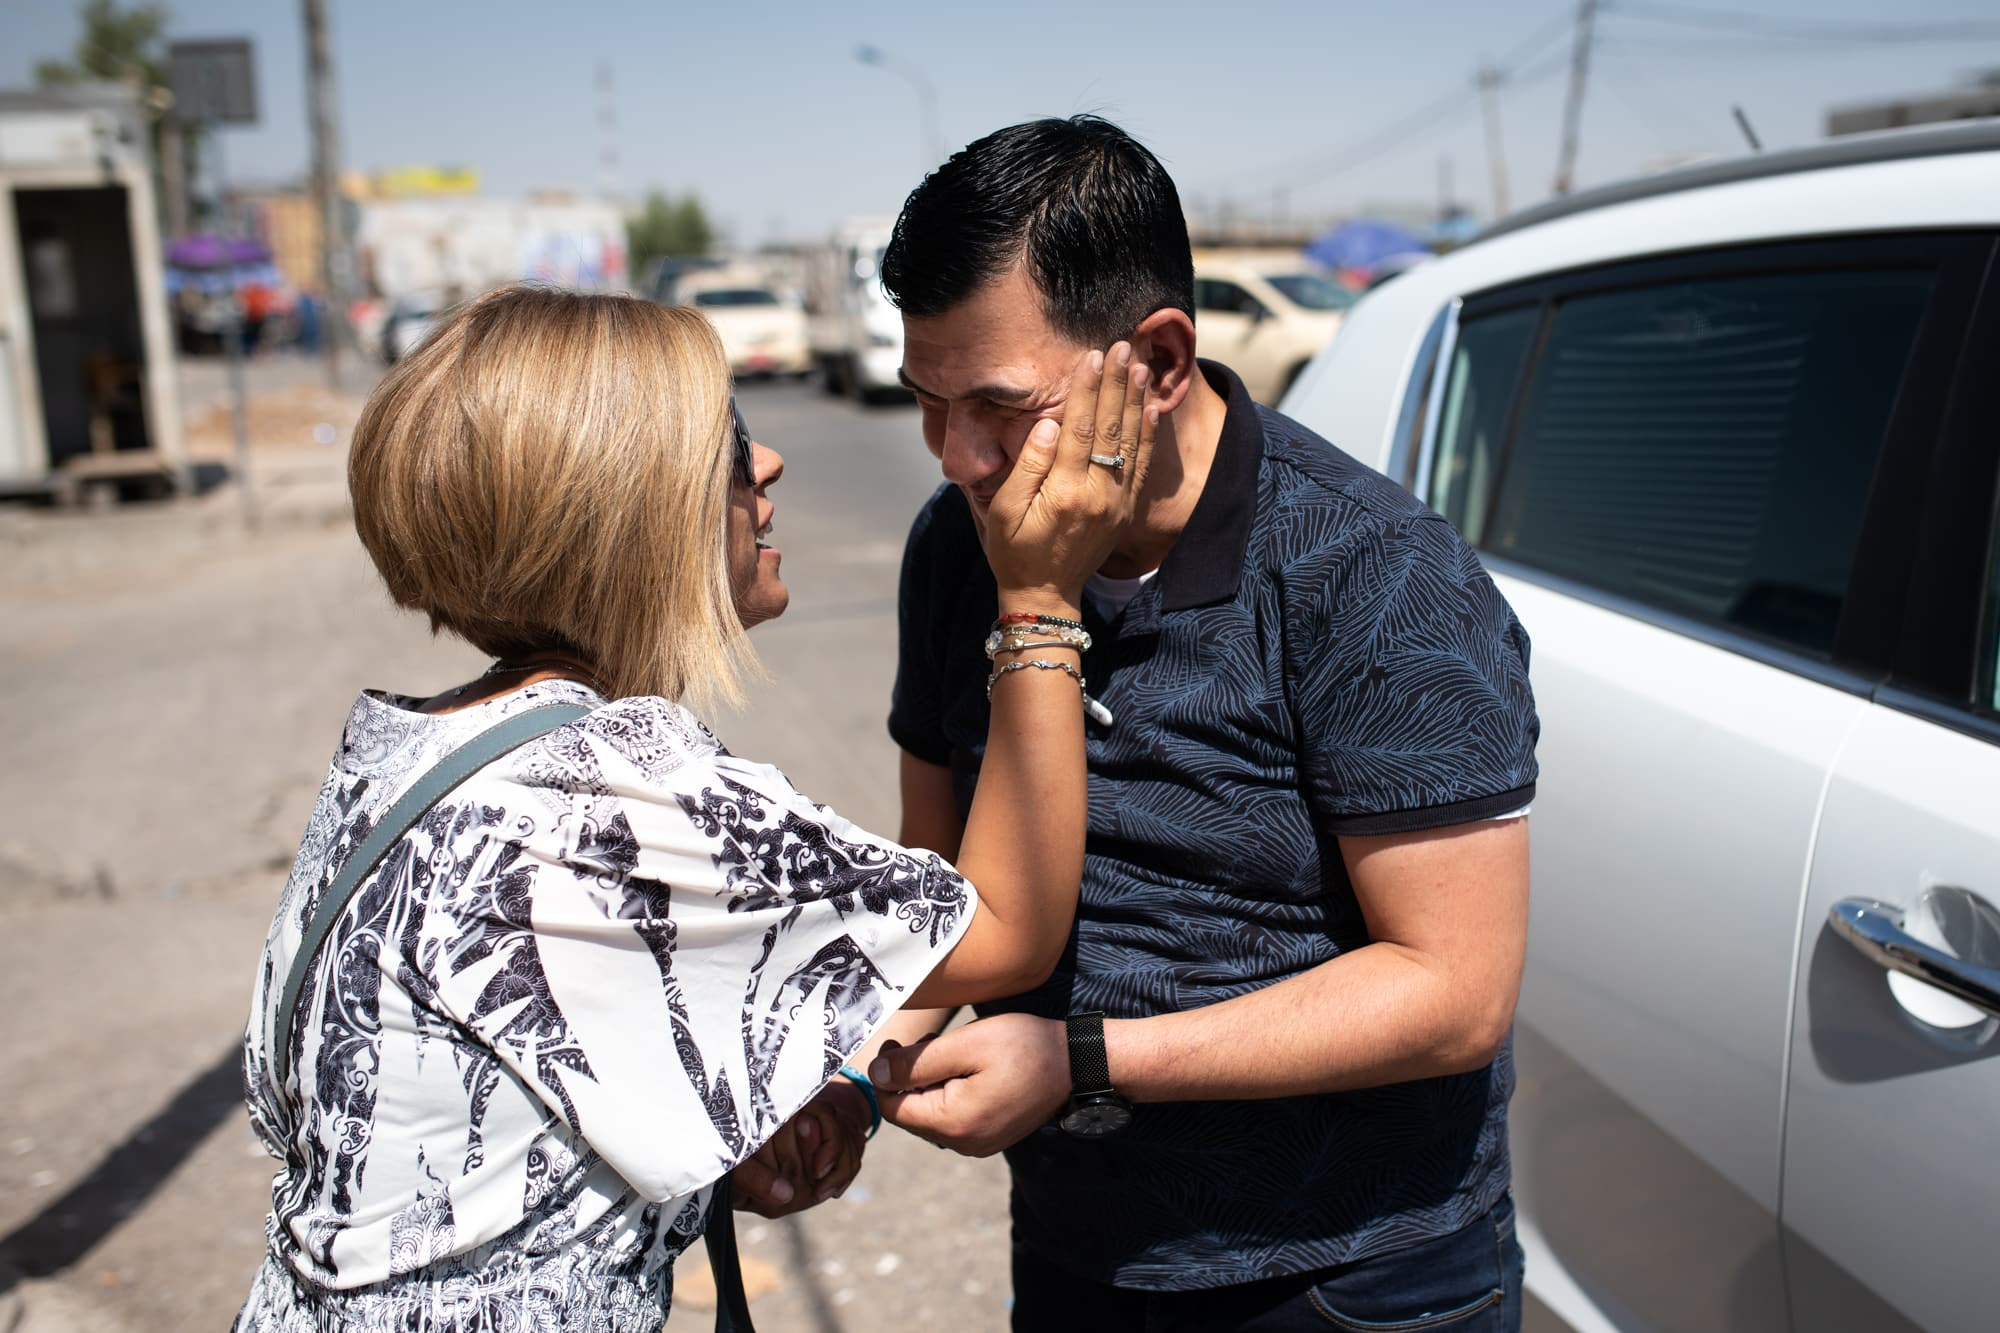 Abdullah Kurdi says goodbye to his sister Tima Kurdi on the 01.09.2019 after the have been buying school uniforms at the market. They are close.